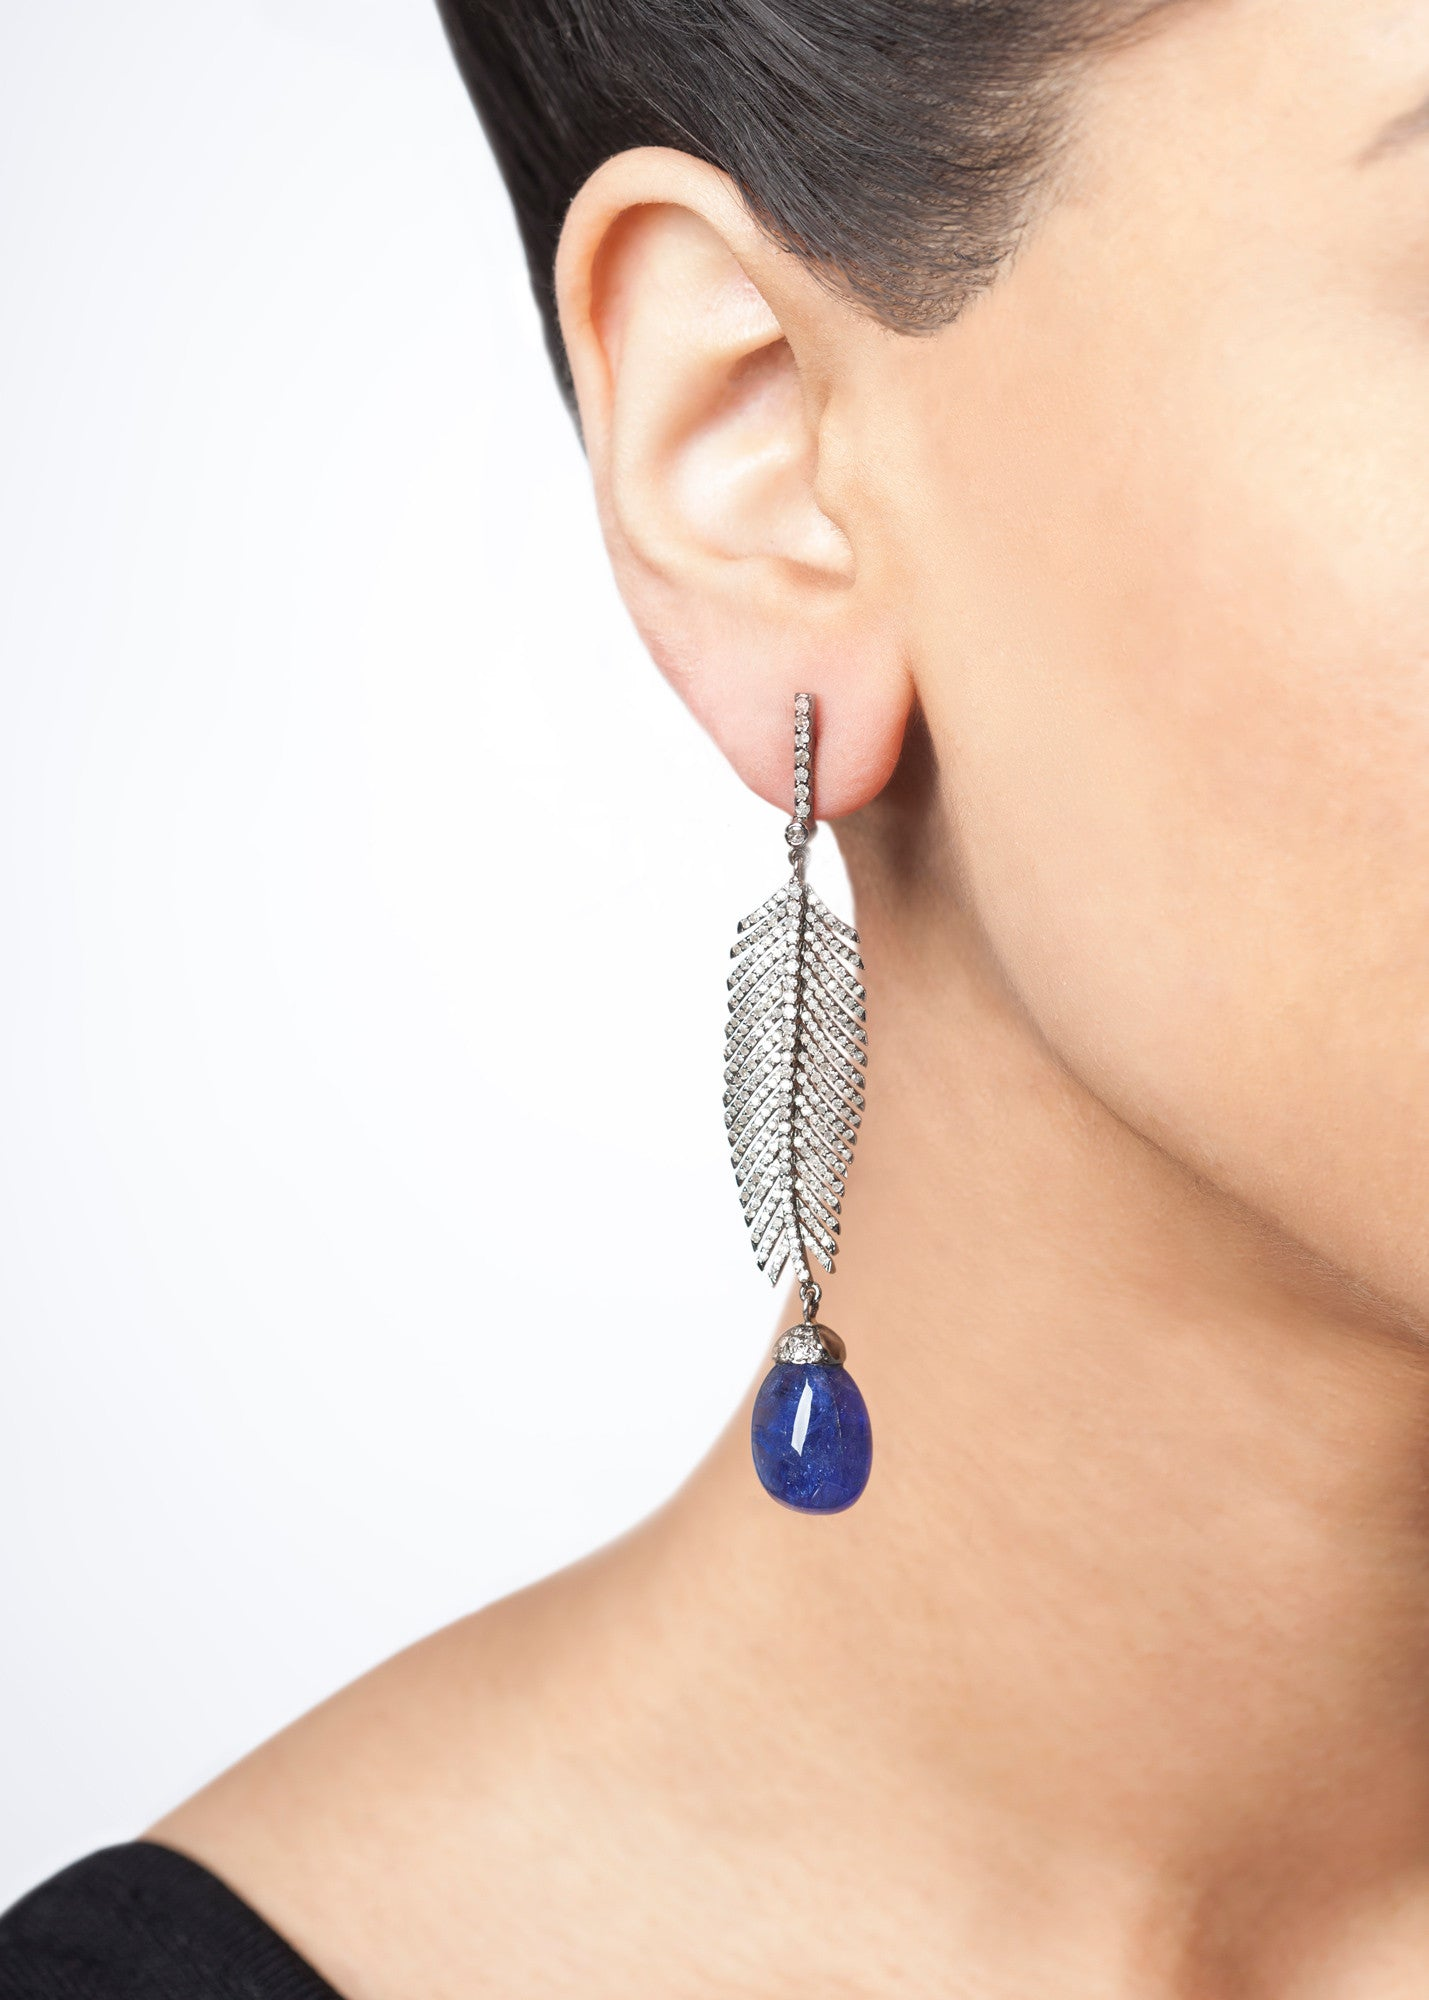 Diamond Feathers and Tanzanite-40% OFF!